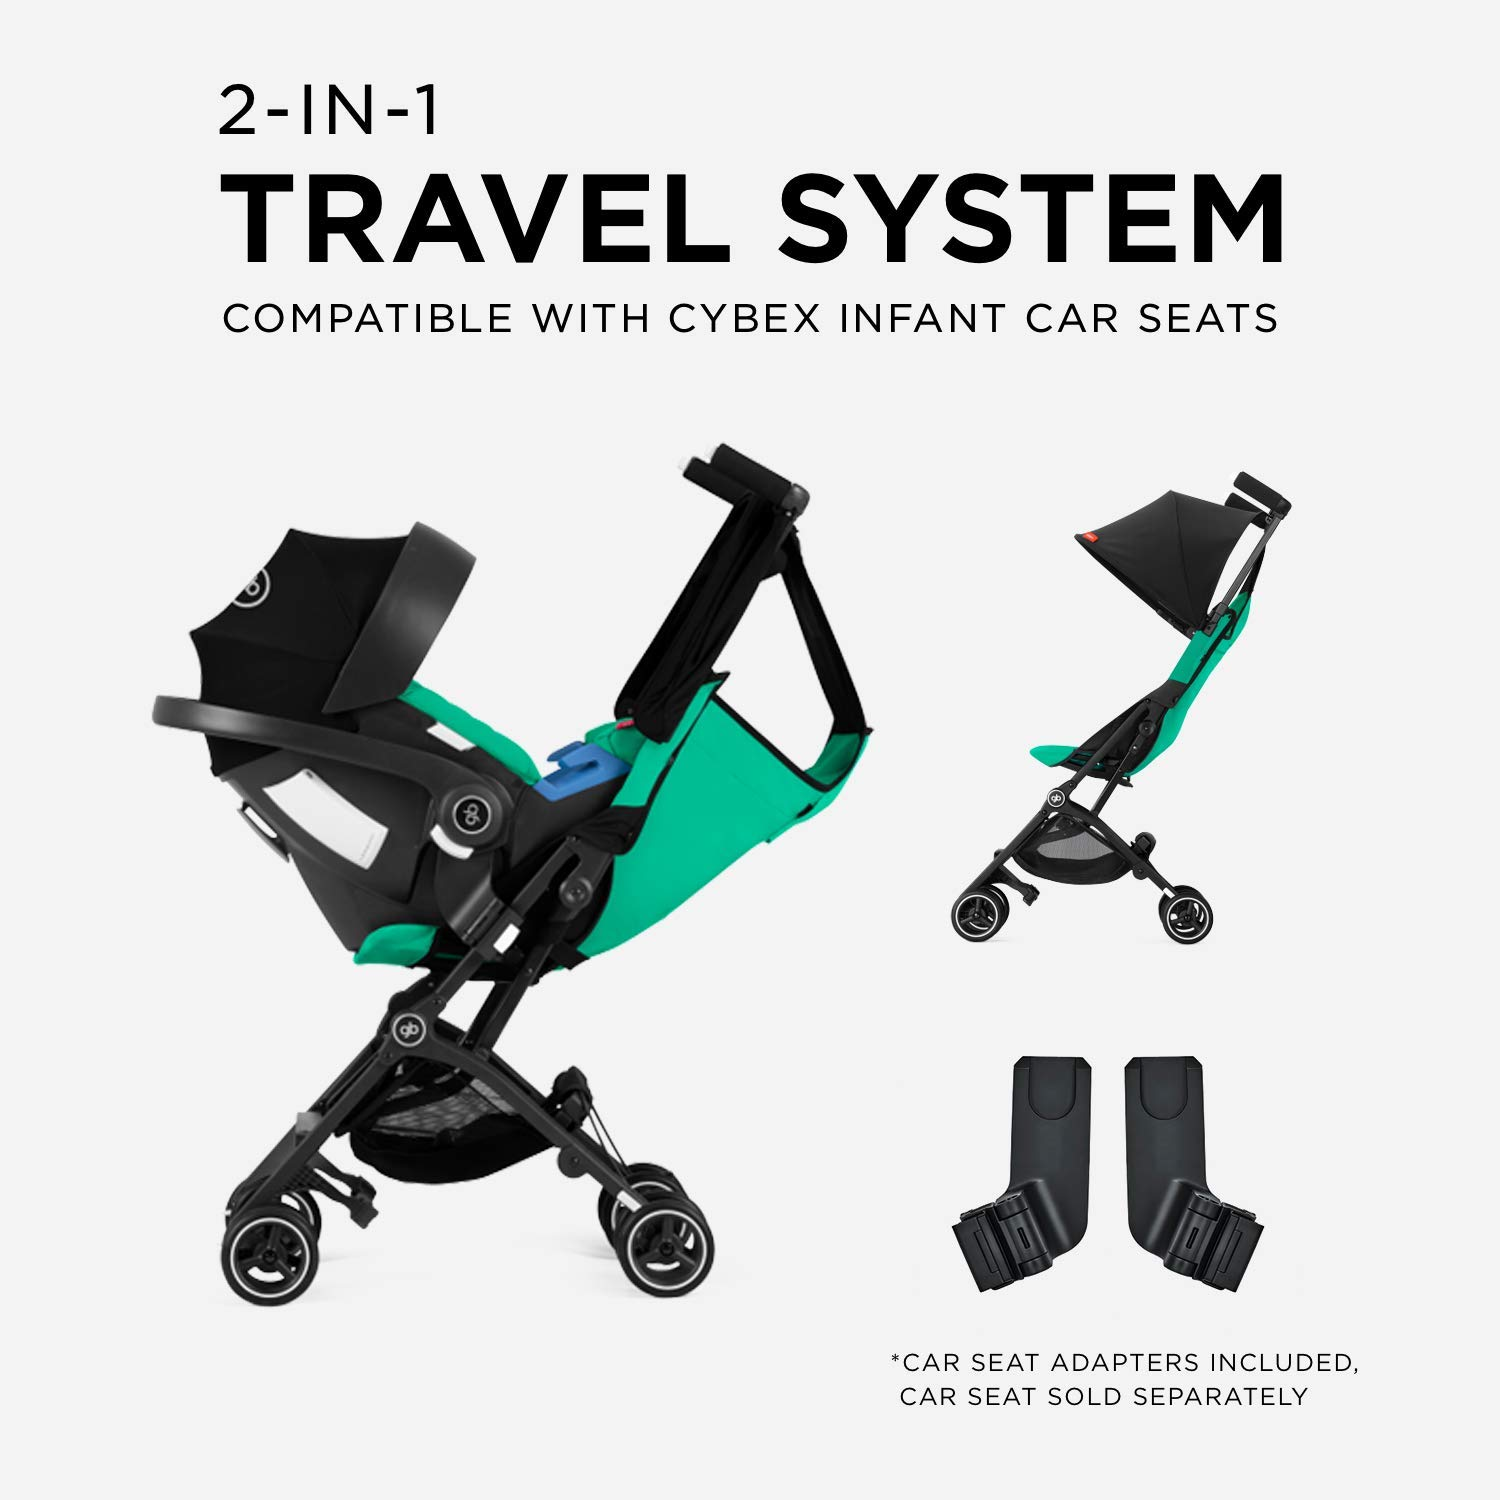 gb Pockit+ Lightweight Baby Stroller, Umbrella Stroller, Collapsible, Travel-Friendly, Folds into Backpack, Fits in Overhead Compartments, Reclining Seat, UPF50+ Sun Canopy, Laguna Blue by gb (Image #9)